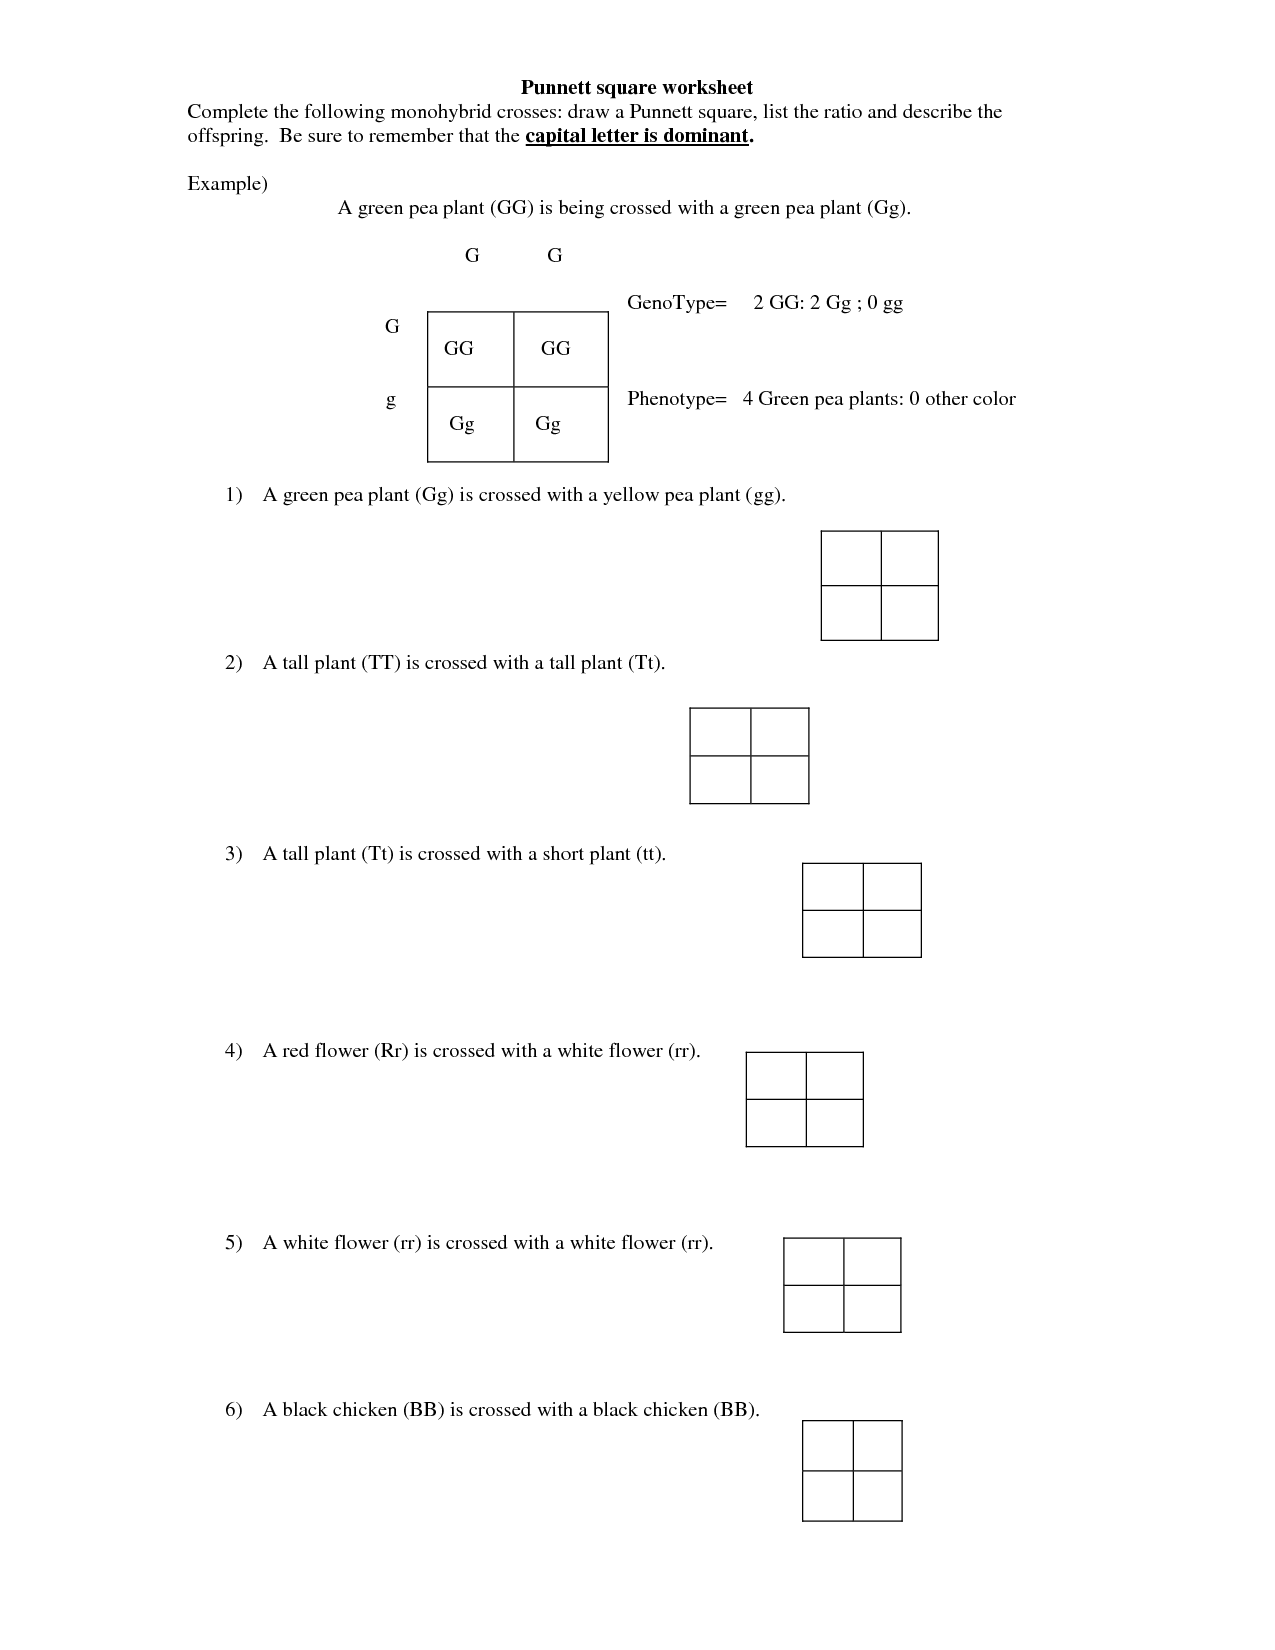 Monohybrid Cross Worksheet – Punnet Square Worksheet